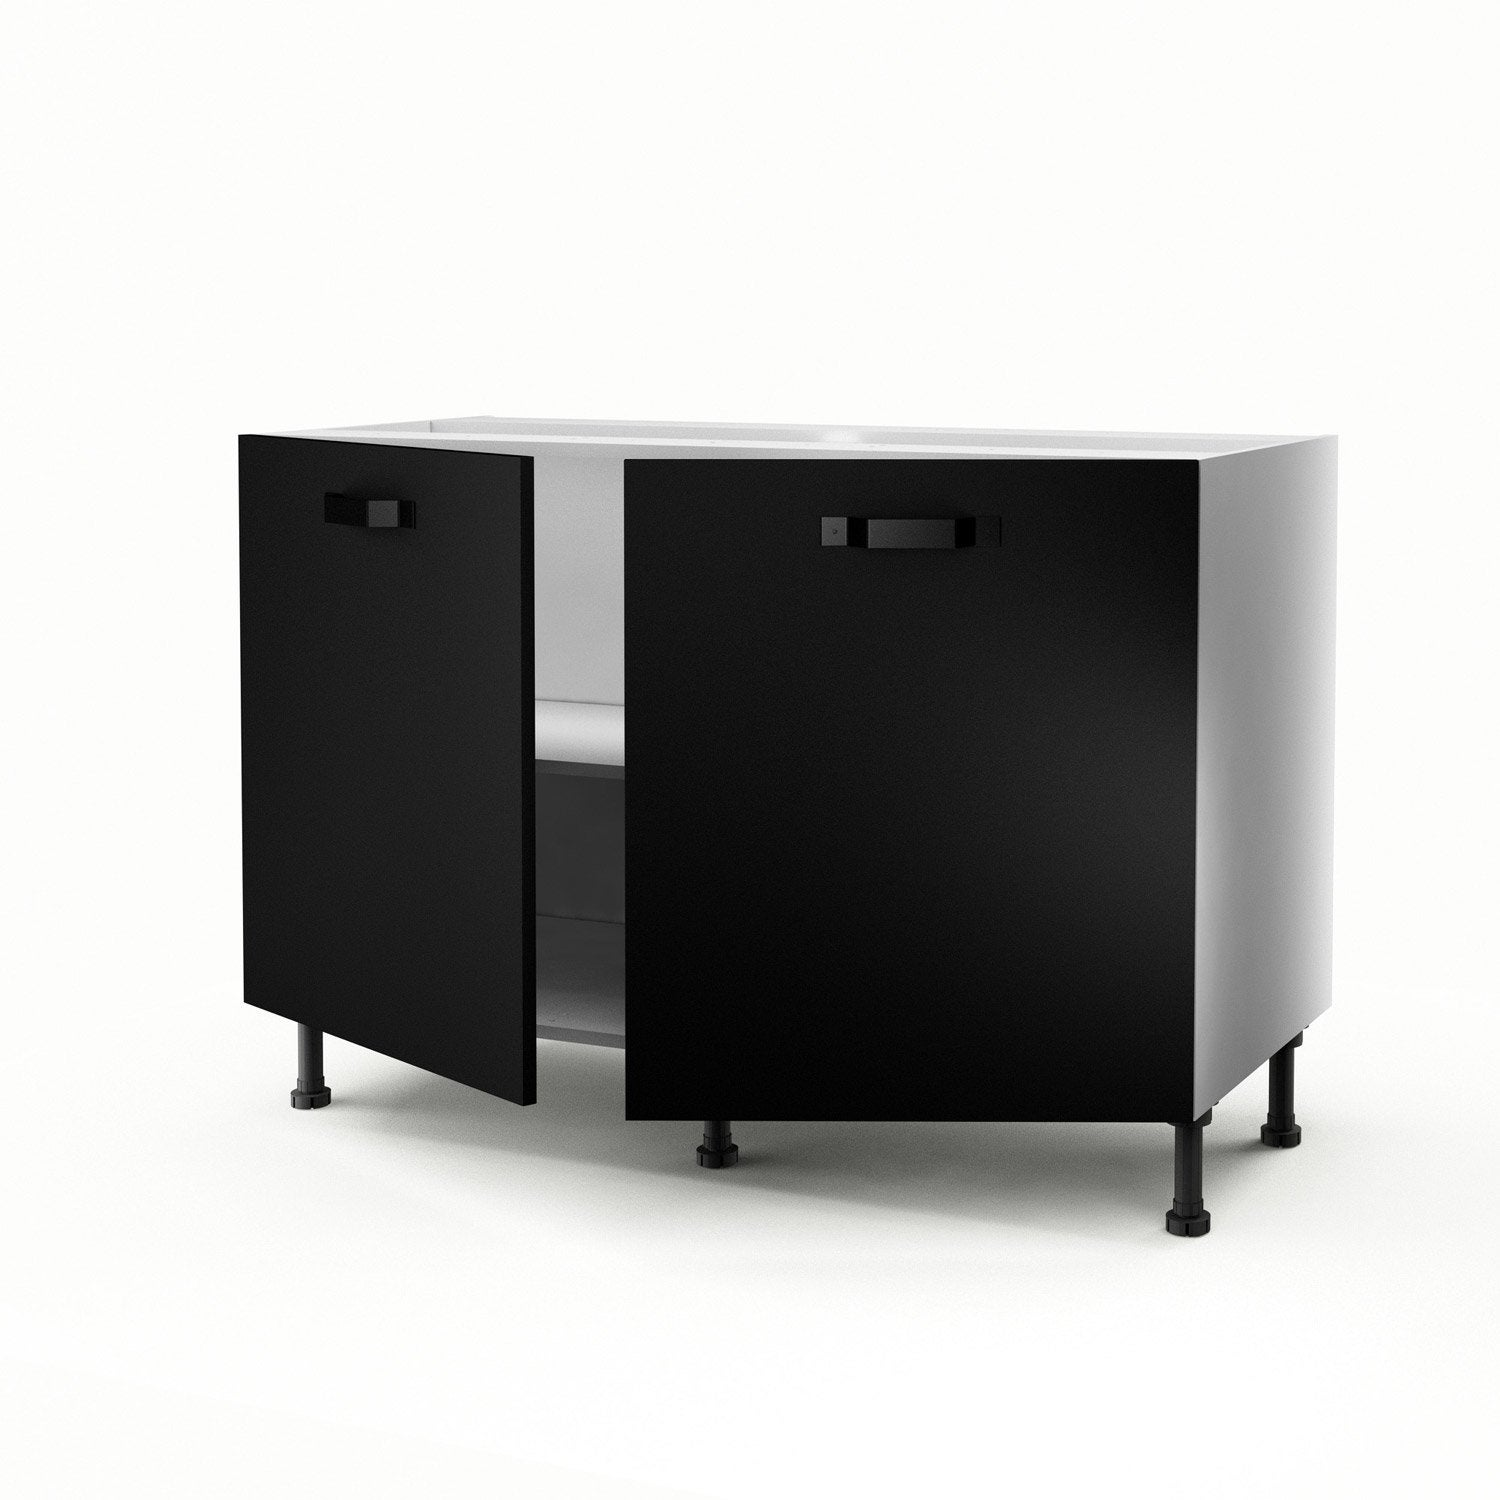 meuble de cuisine sous vier noir 2 portes mat edition x x cm leroy merlin. Black Bedroom Furniture Sets. Home Design Ideas